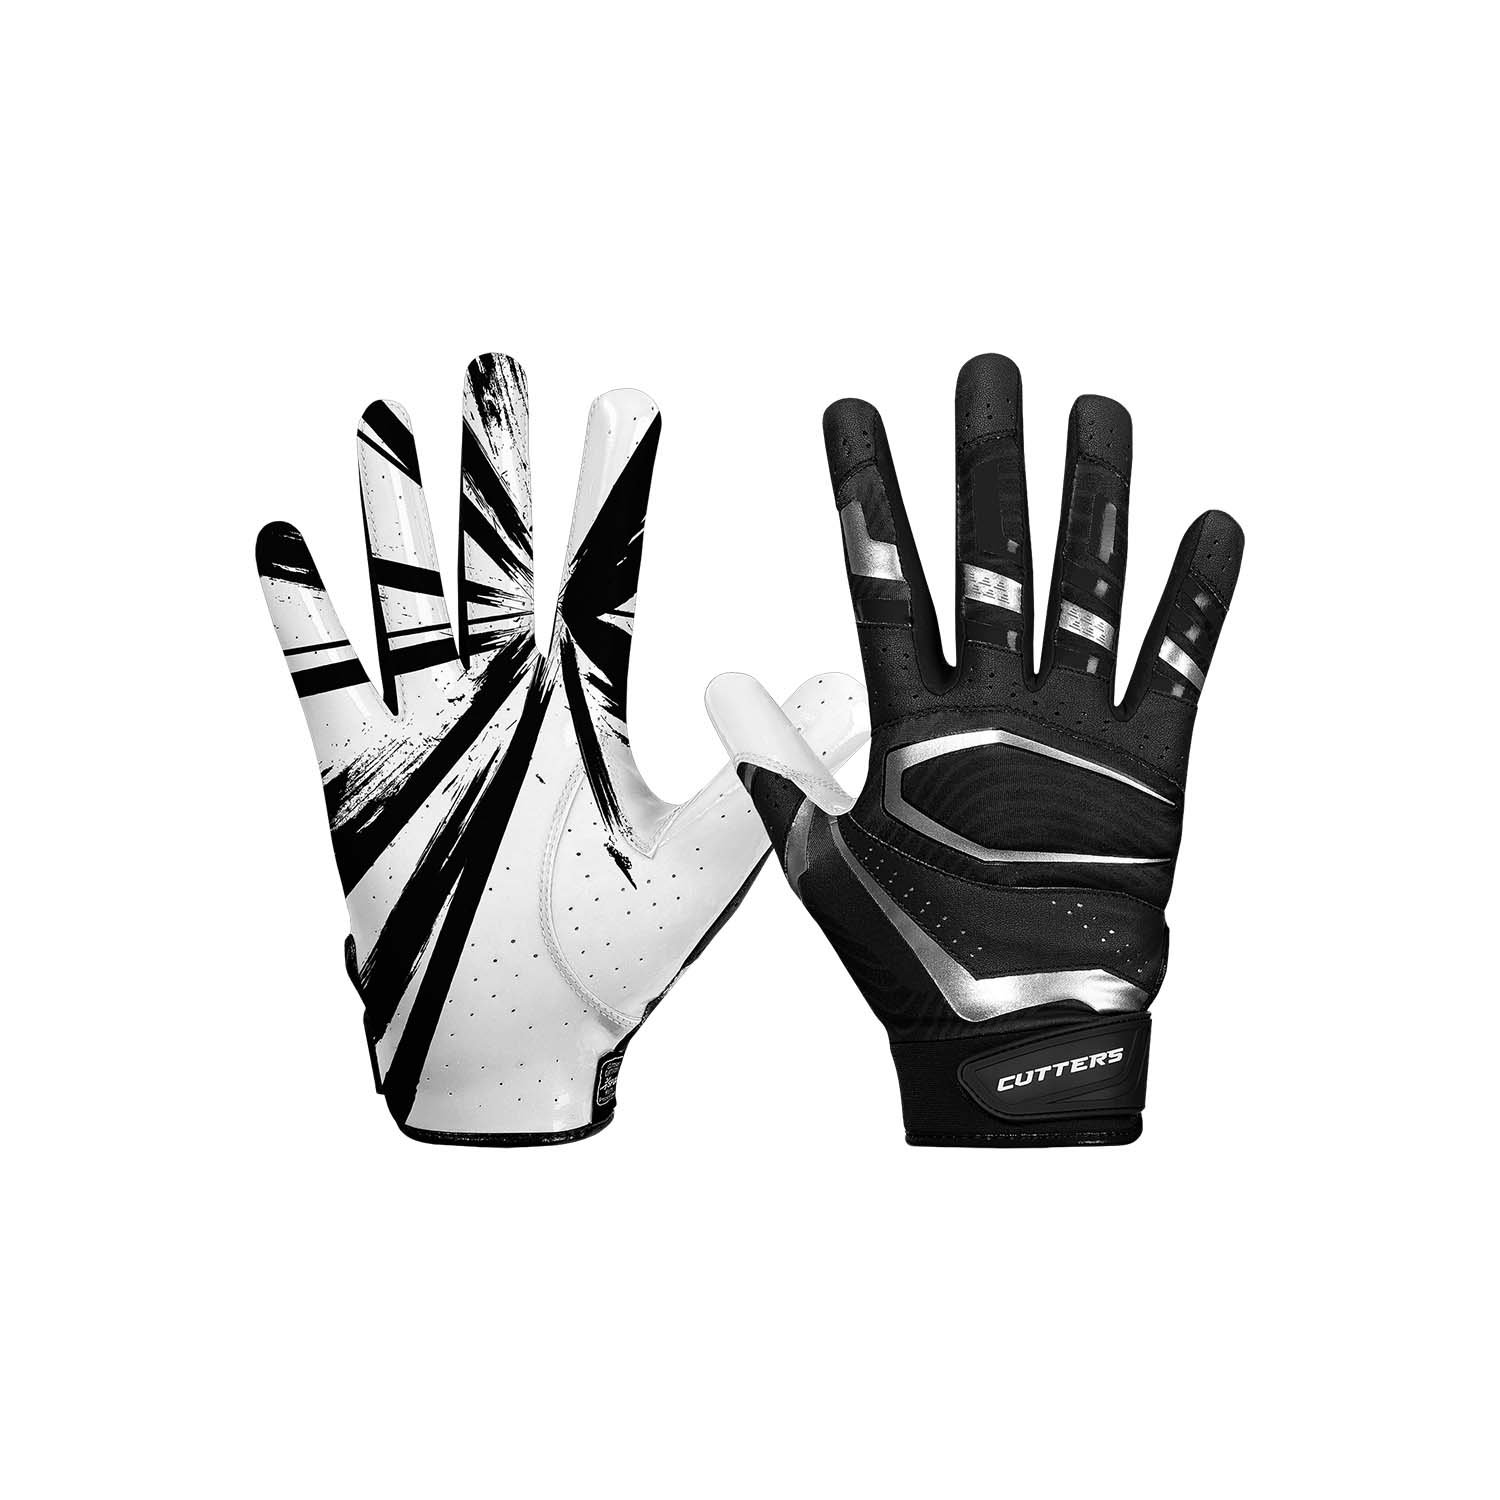 Cutters Gloves, Black/White, Medium by Cutters